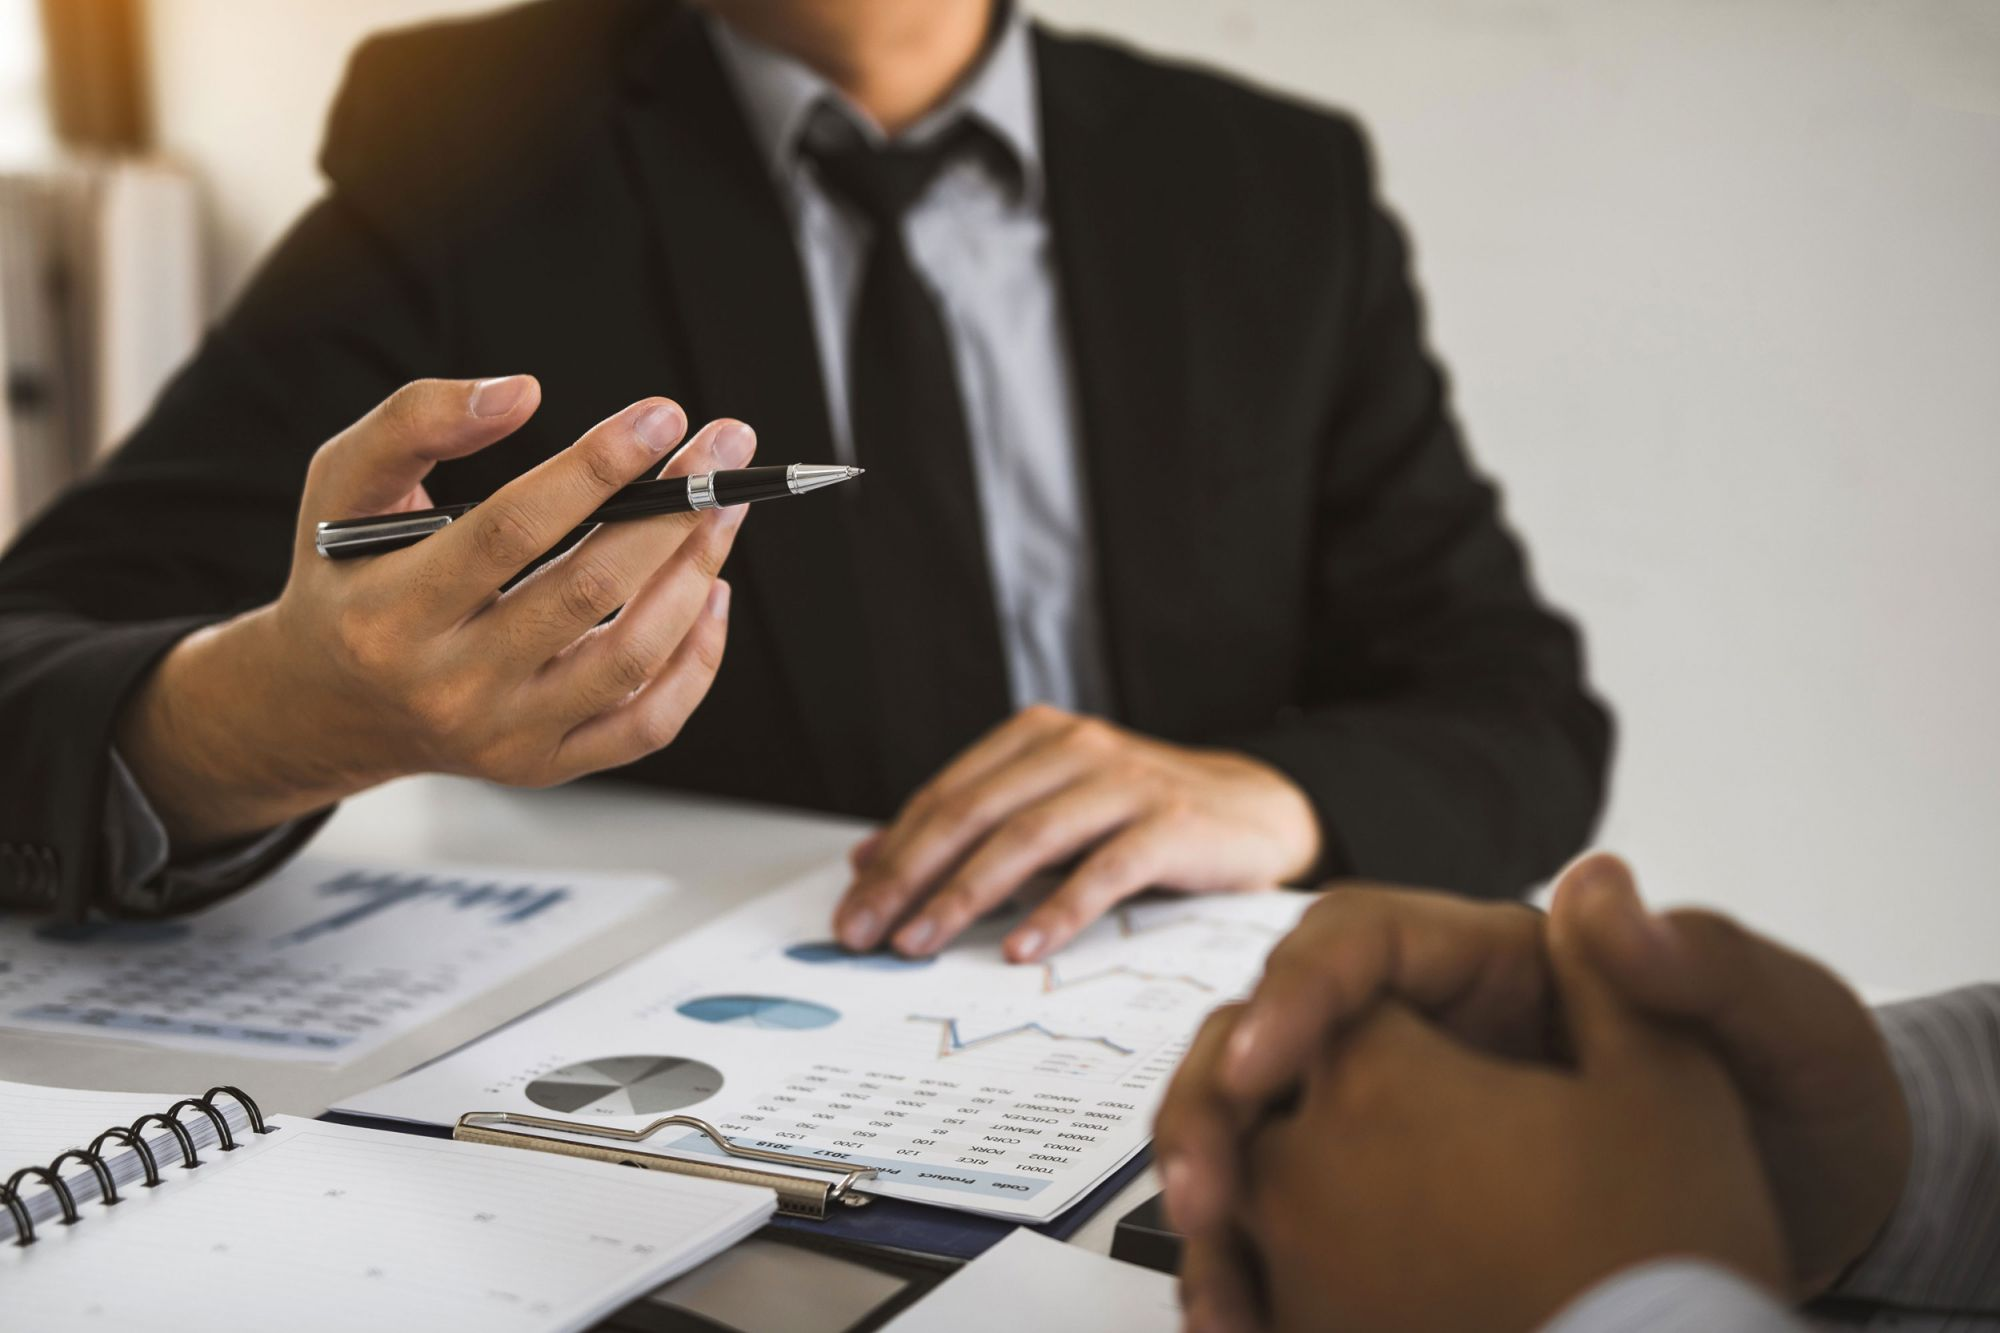 6 Proven Ways Financial Advisors Can Grow Their Businesses